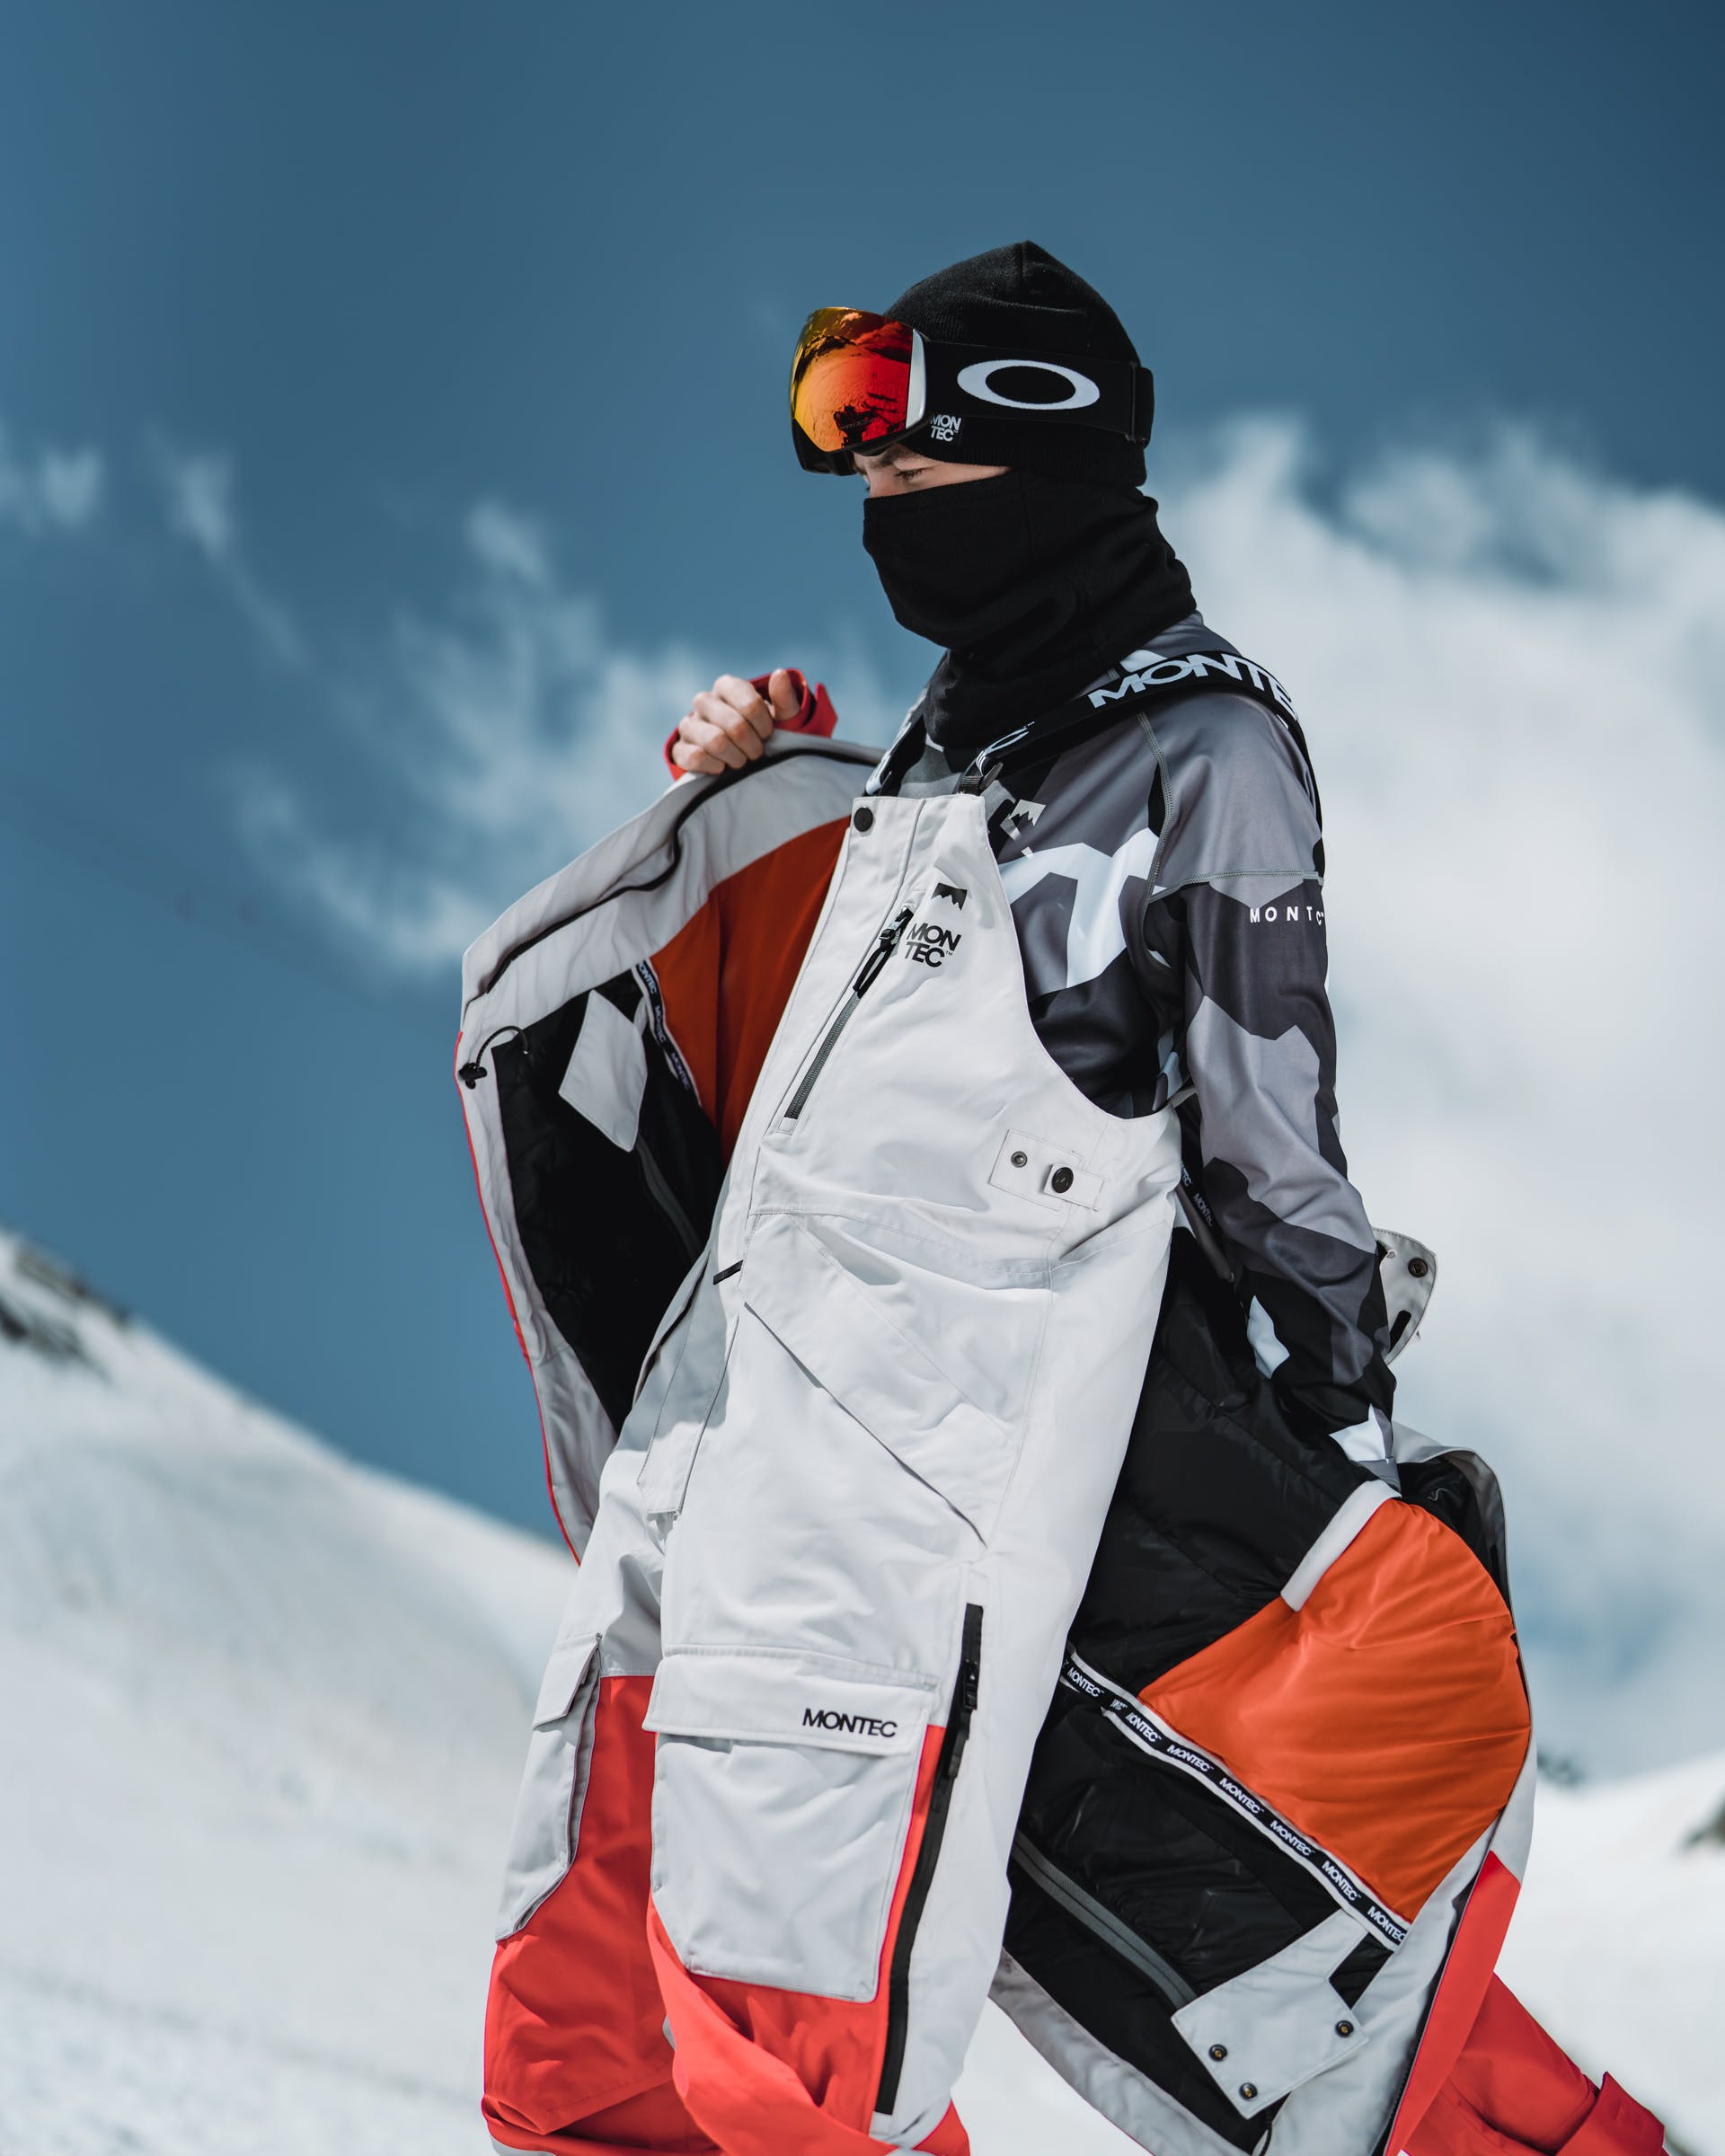 Check out some more of our awesome skiing styles